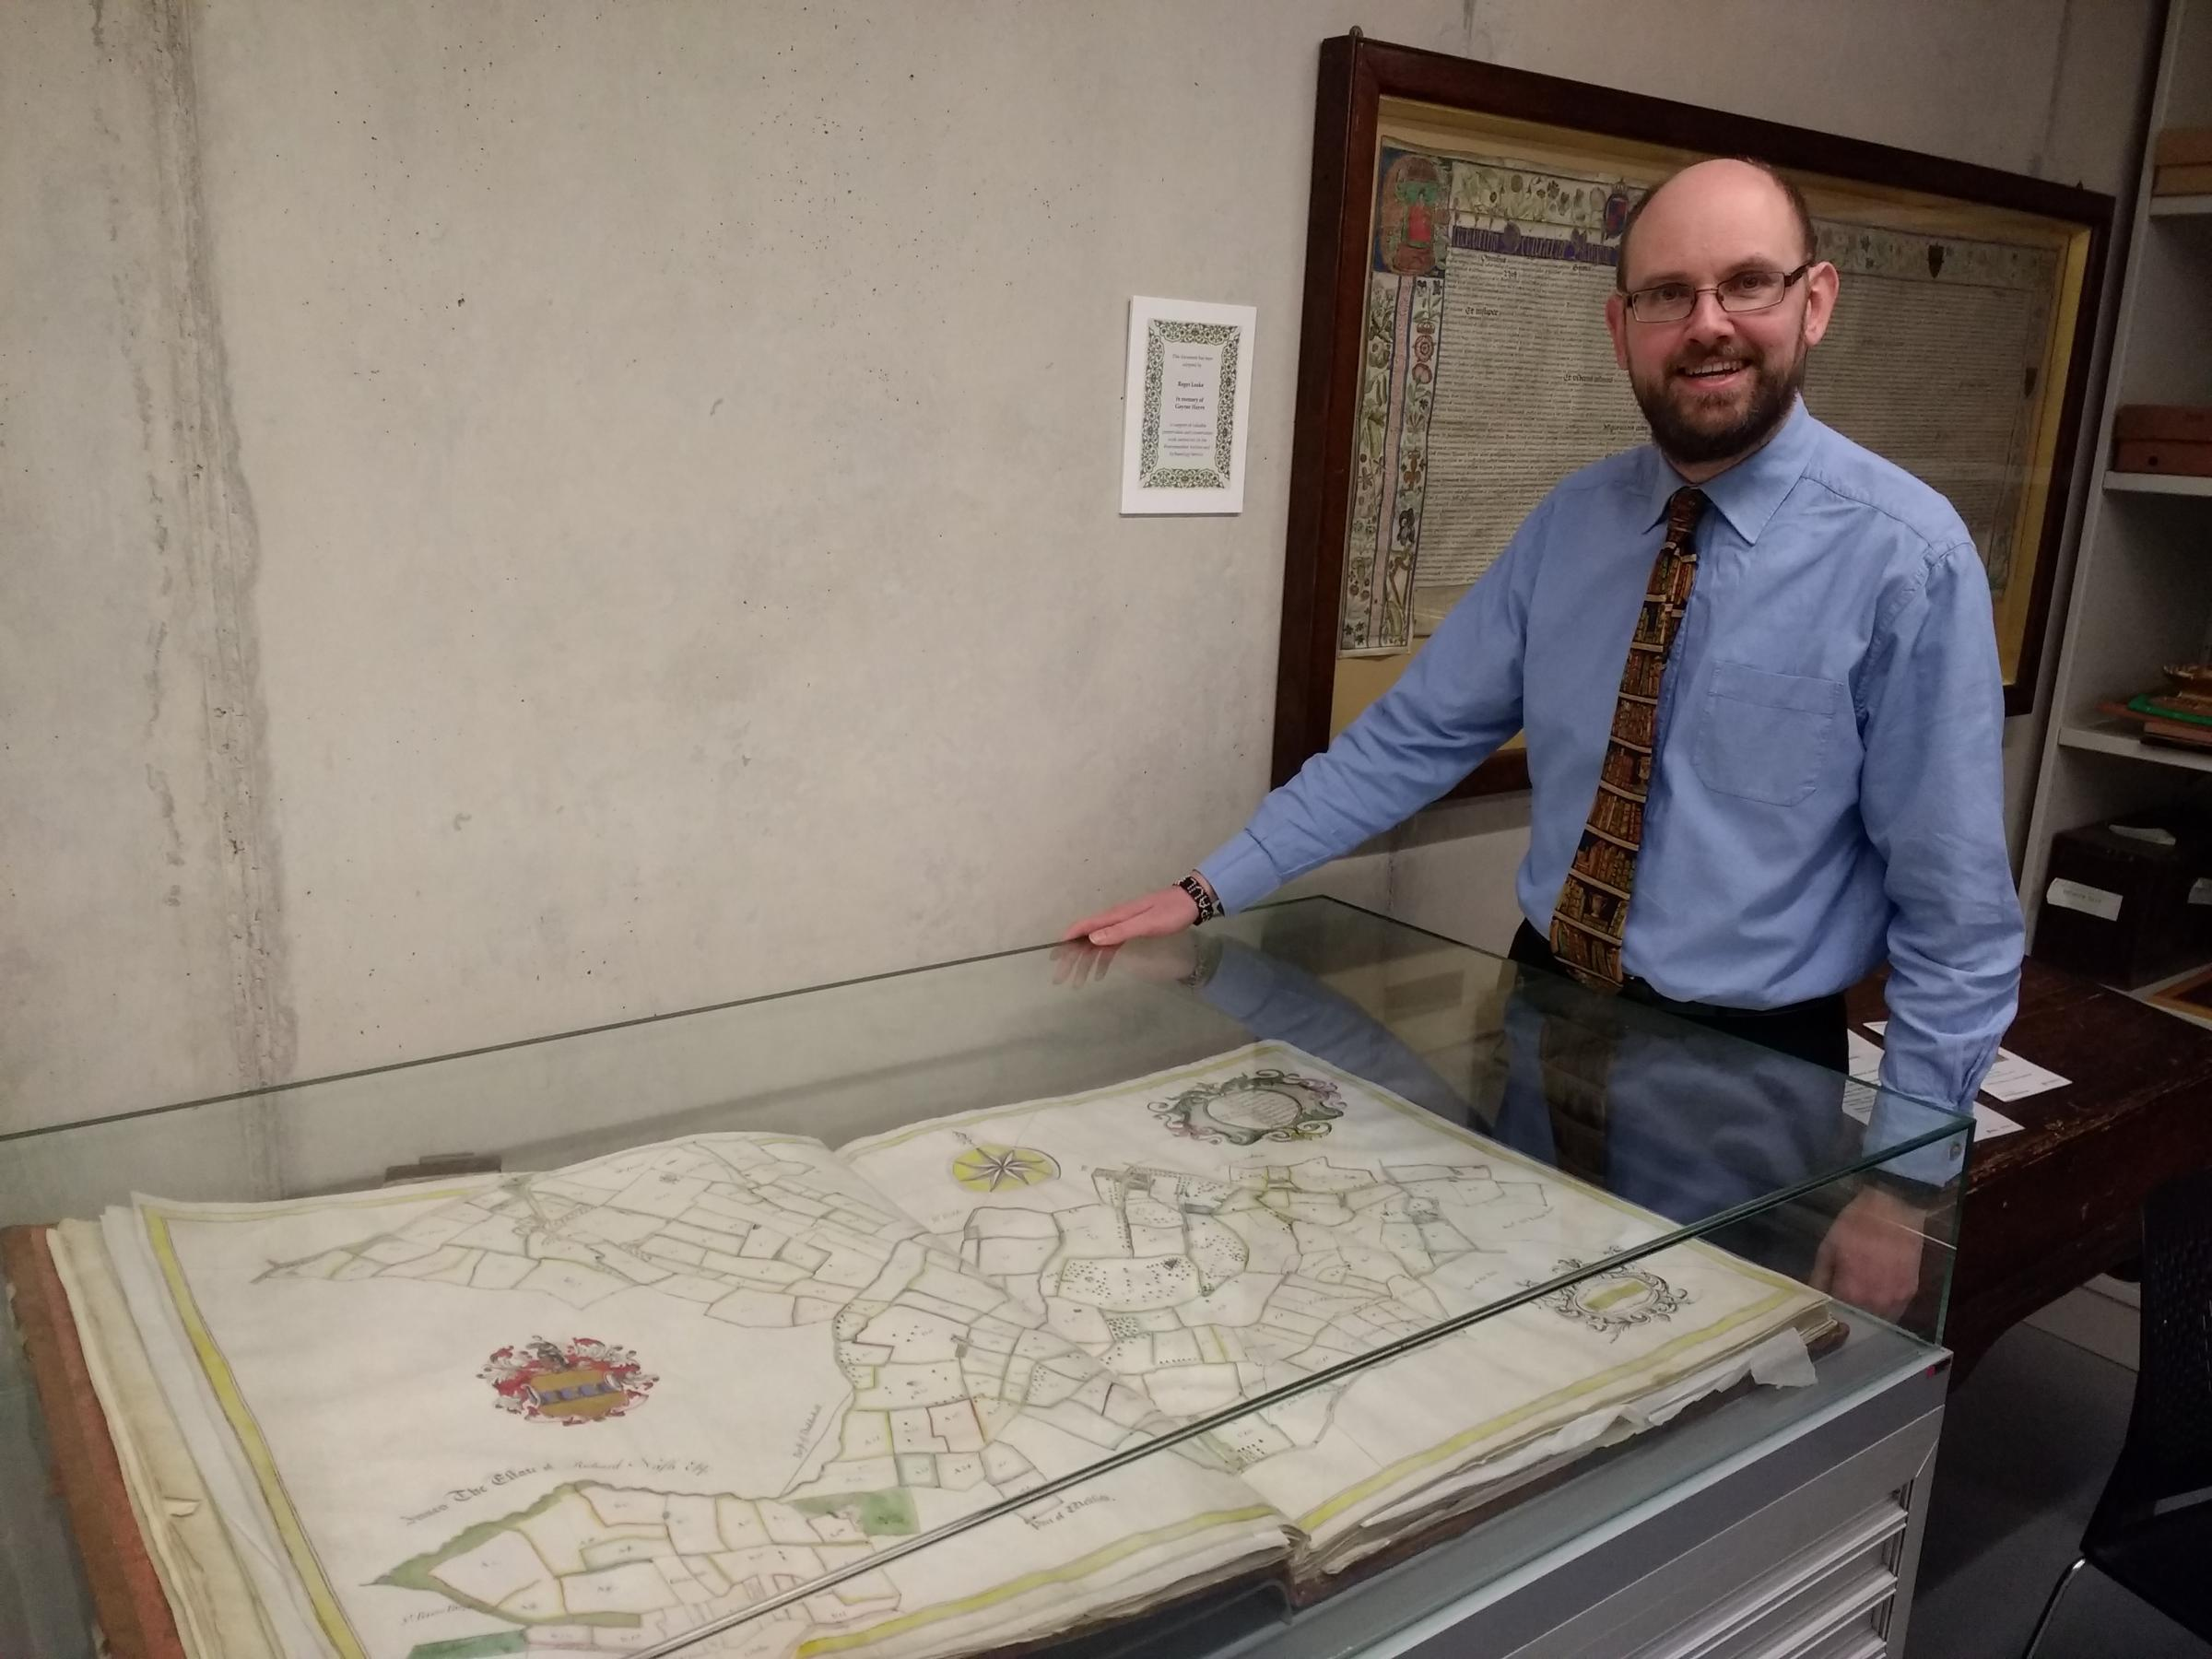 Paul Hudson with the 1732 Vernon map book at The Hive